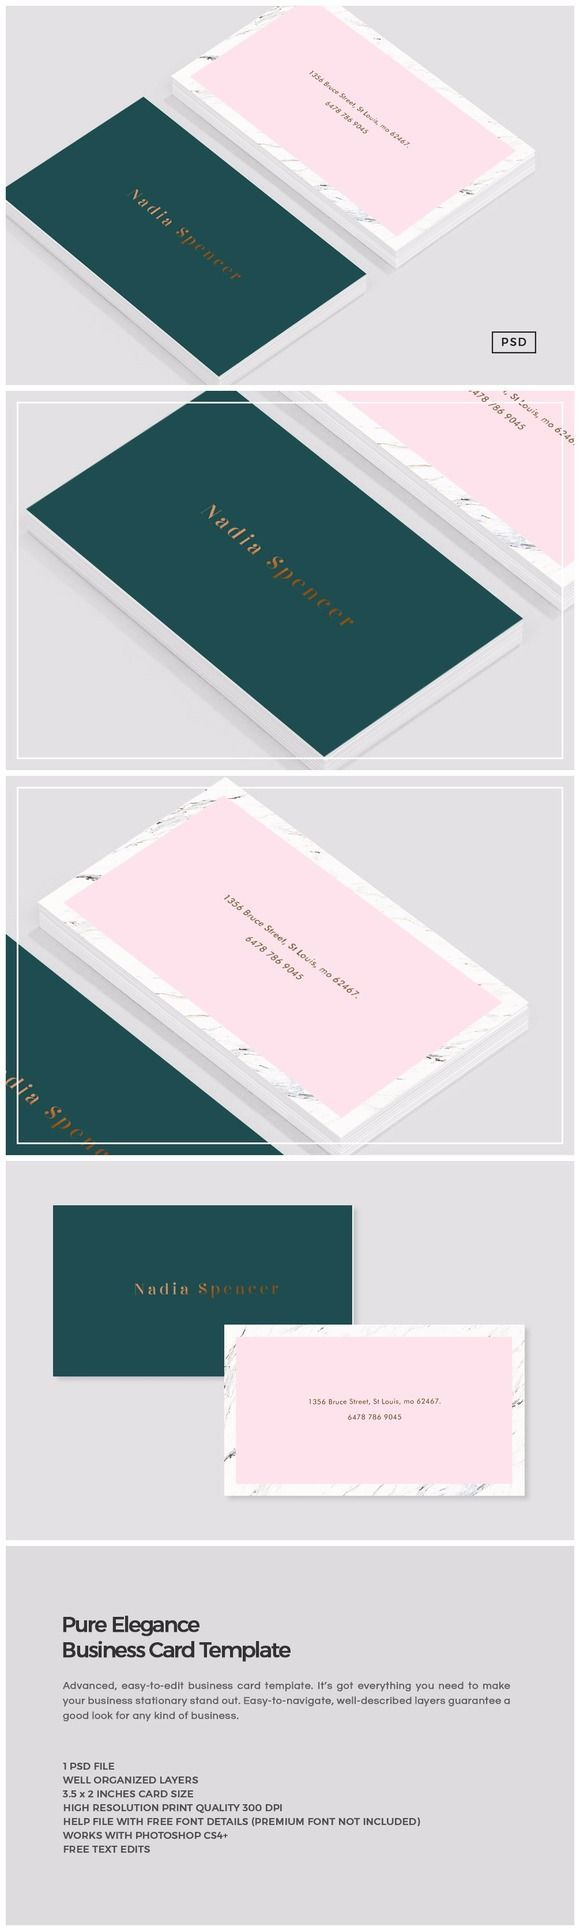 Pure Elegance Business Card Template by The Design Label on @creativemarket